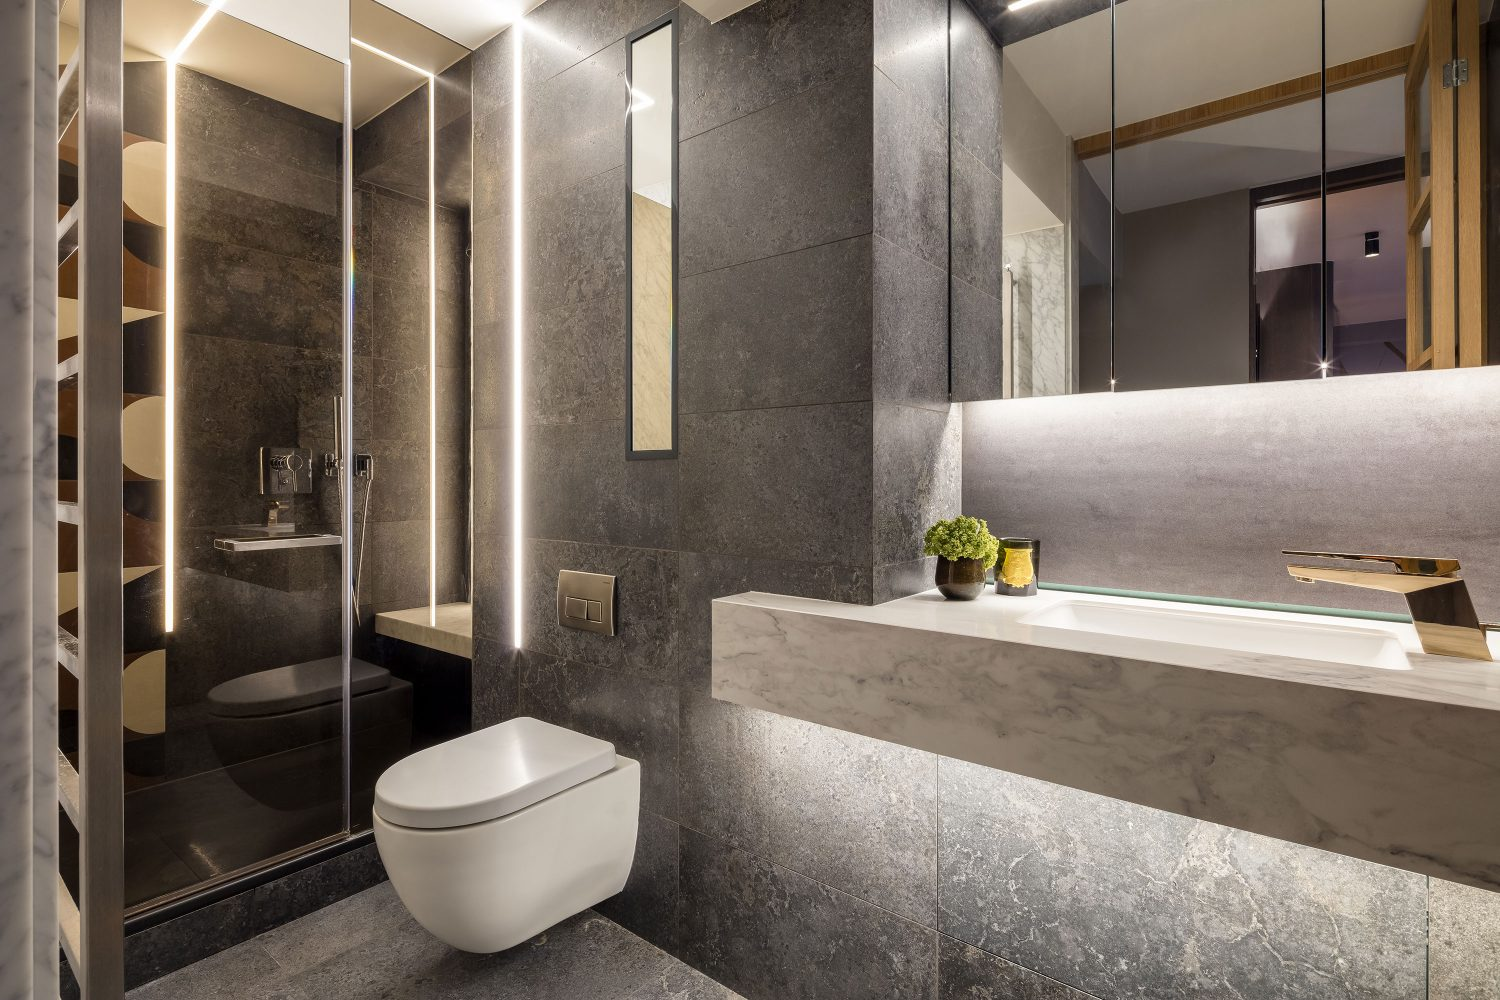 Bathroom Home Interior Design Home Bird Daniel Hopwood At Home Interior Design London